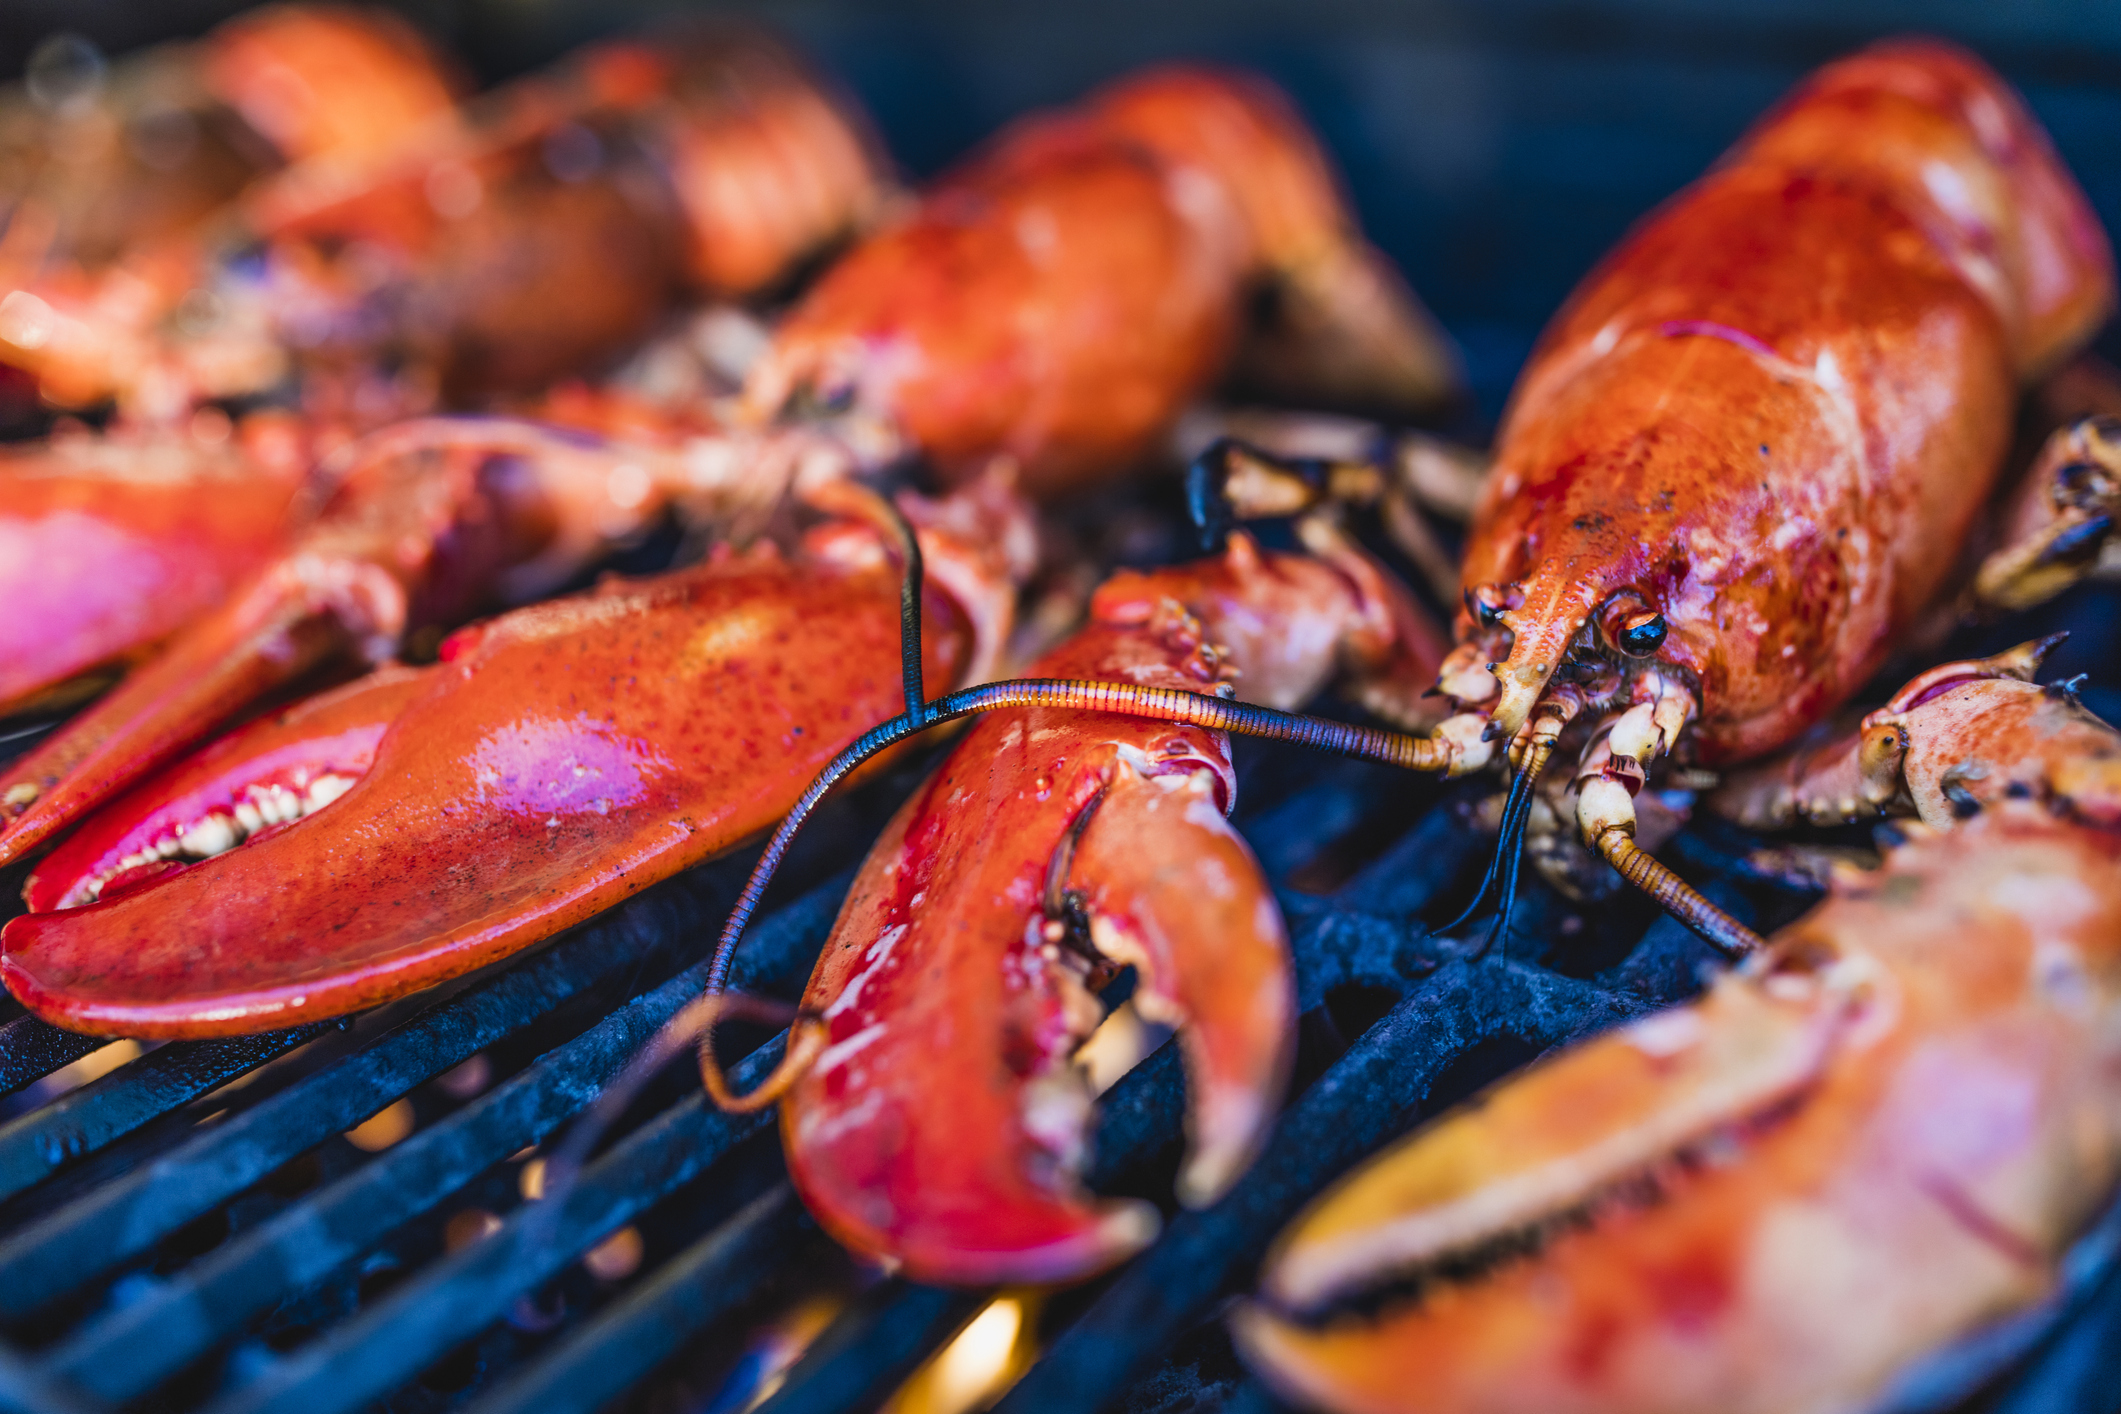 Close-up of Canadian lobsters grilling on the barbecue.